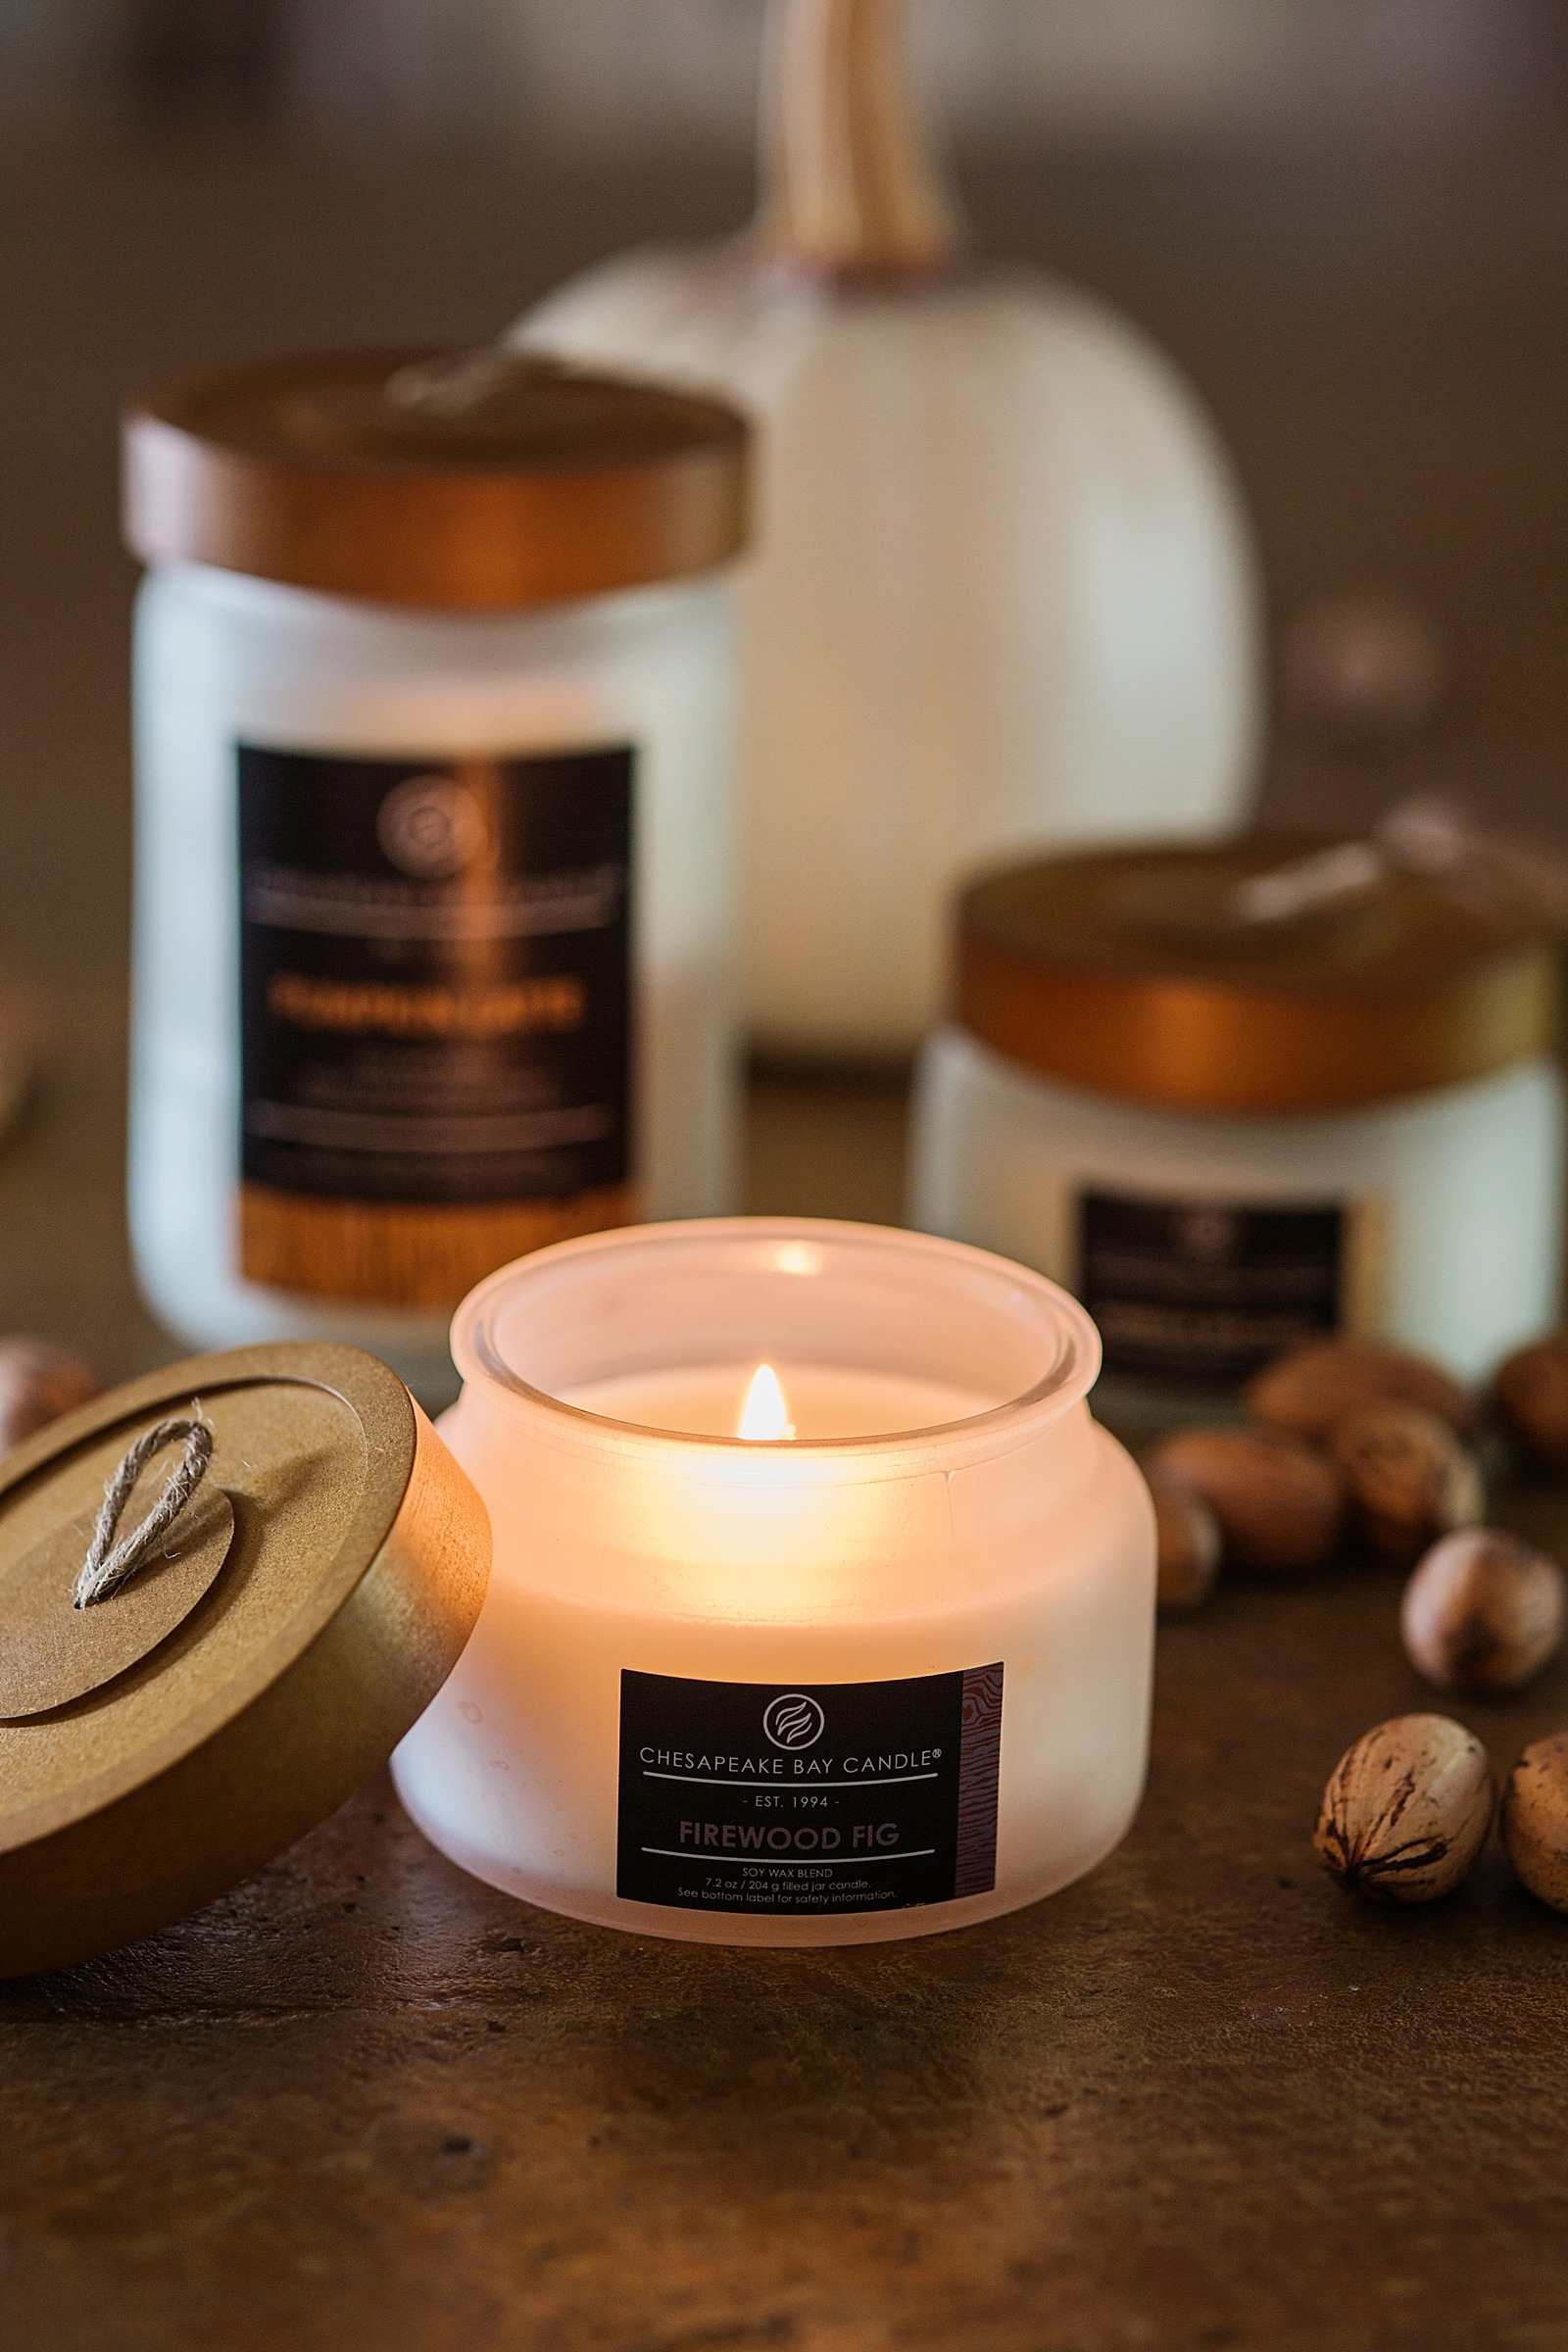 chesapeake-bay-candle-heritage-collection-best-fall-winter-holiday-candles-soy-mix-essential-oils-2